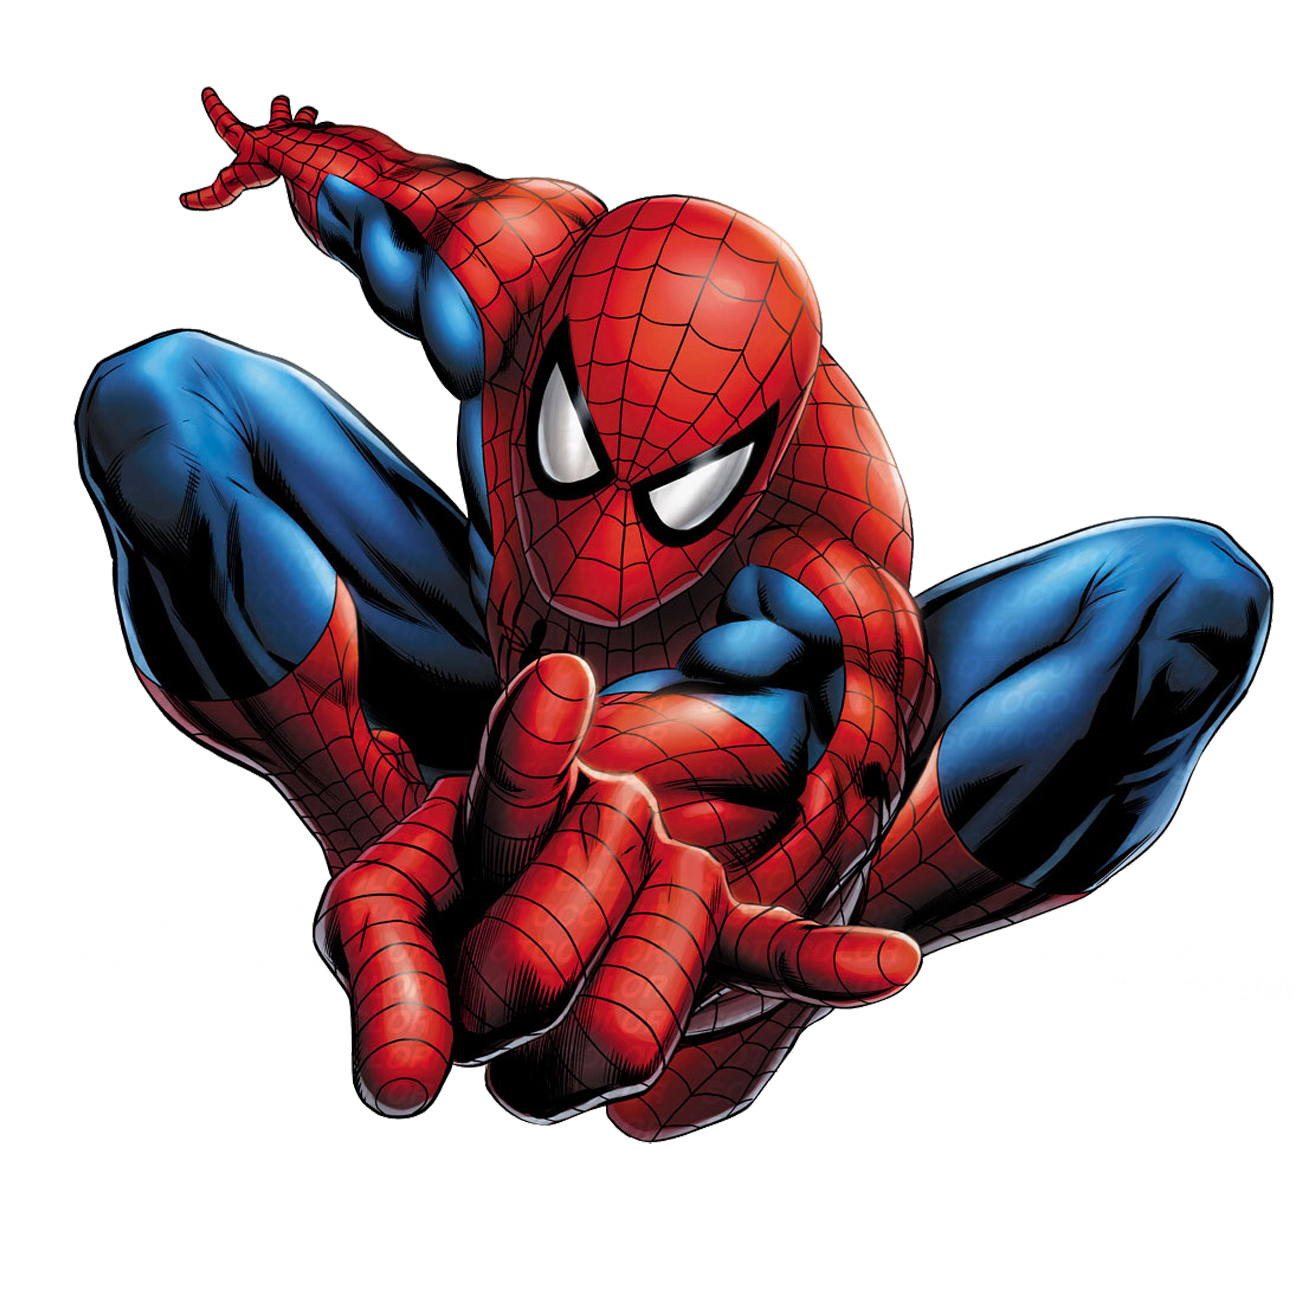 Find this Pin and more on Spider-Man by viviana20araya. - Spiderman PNG